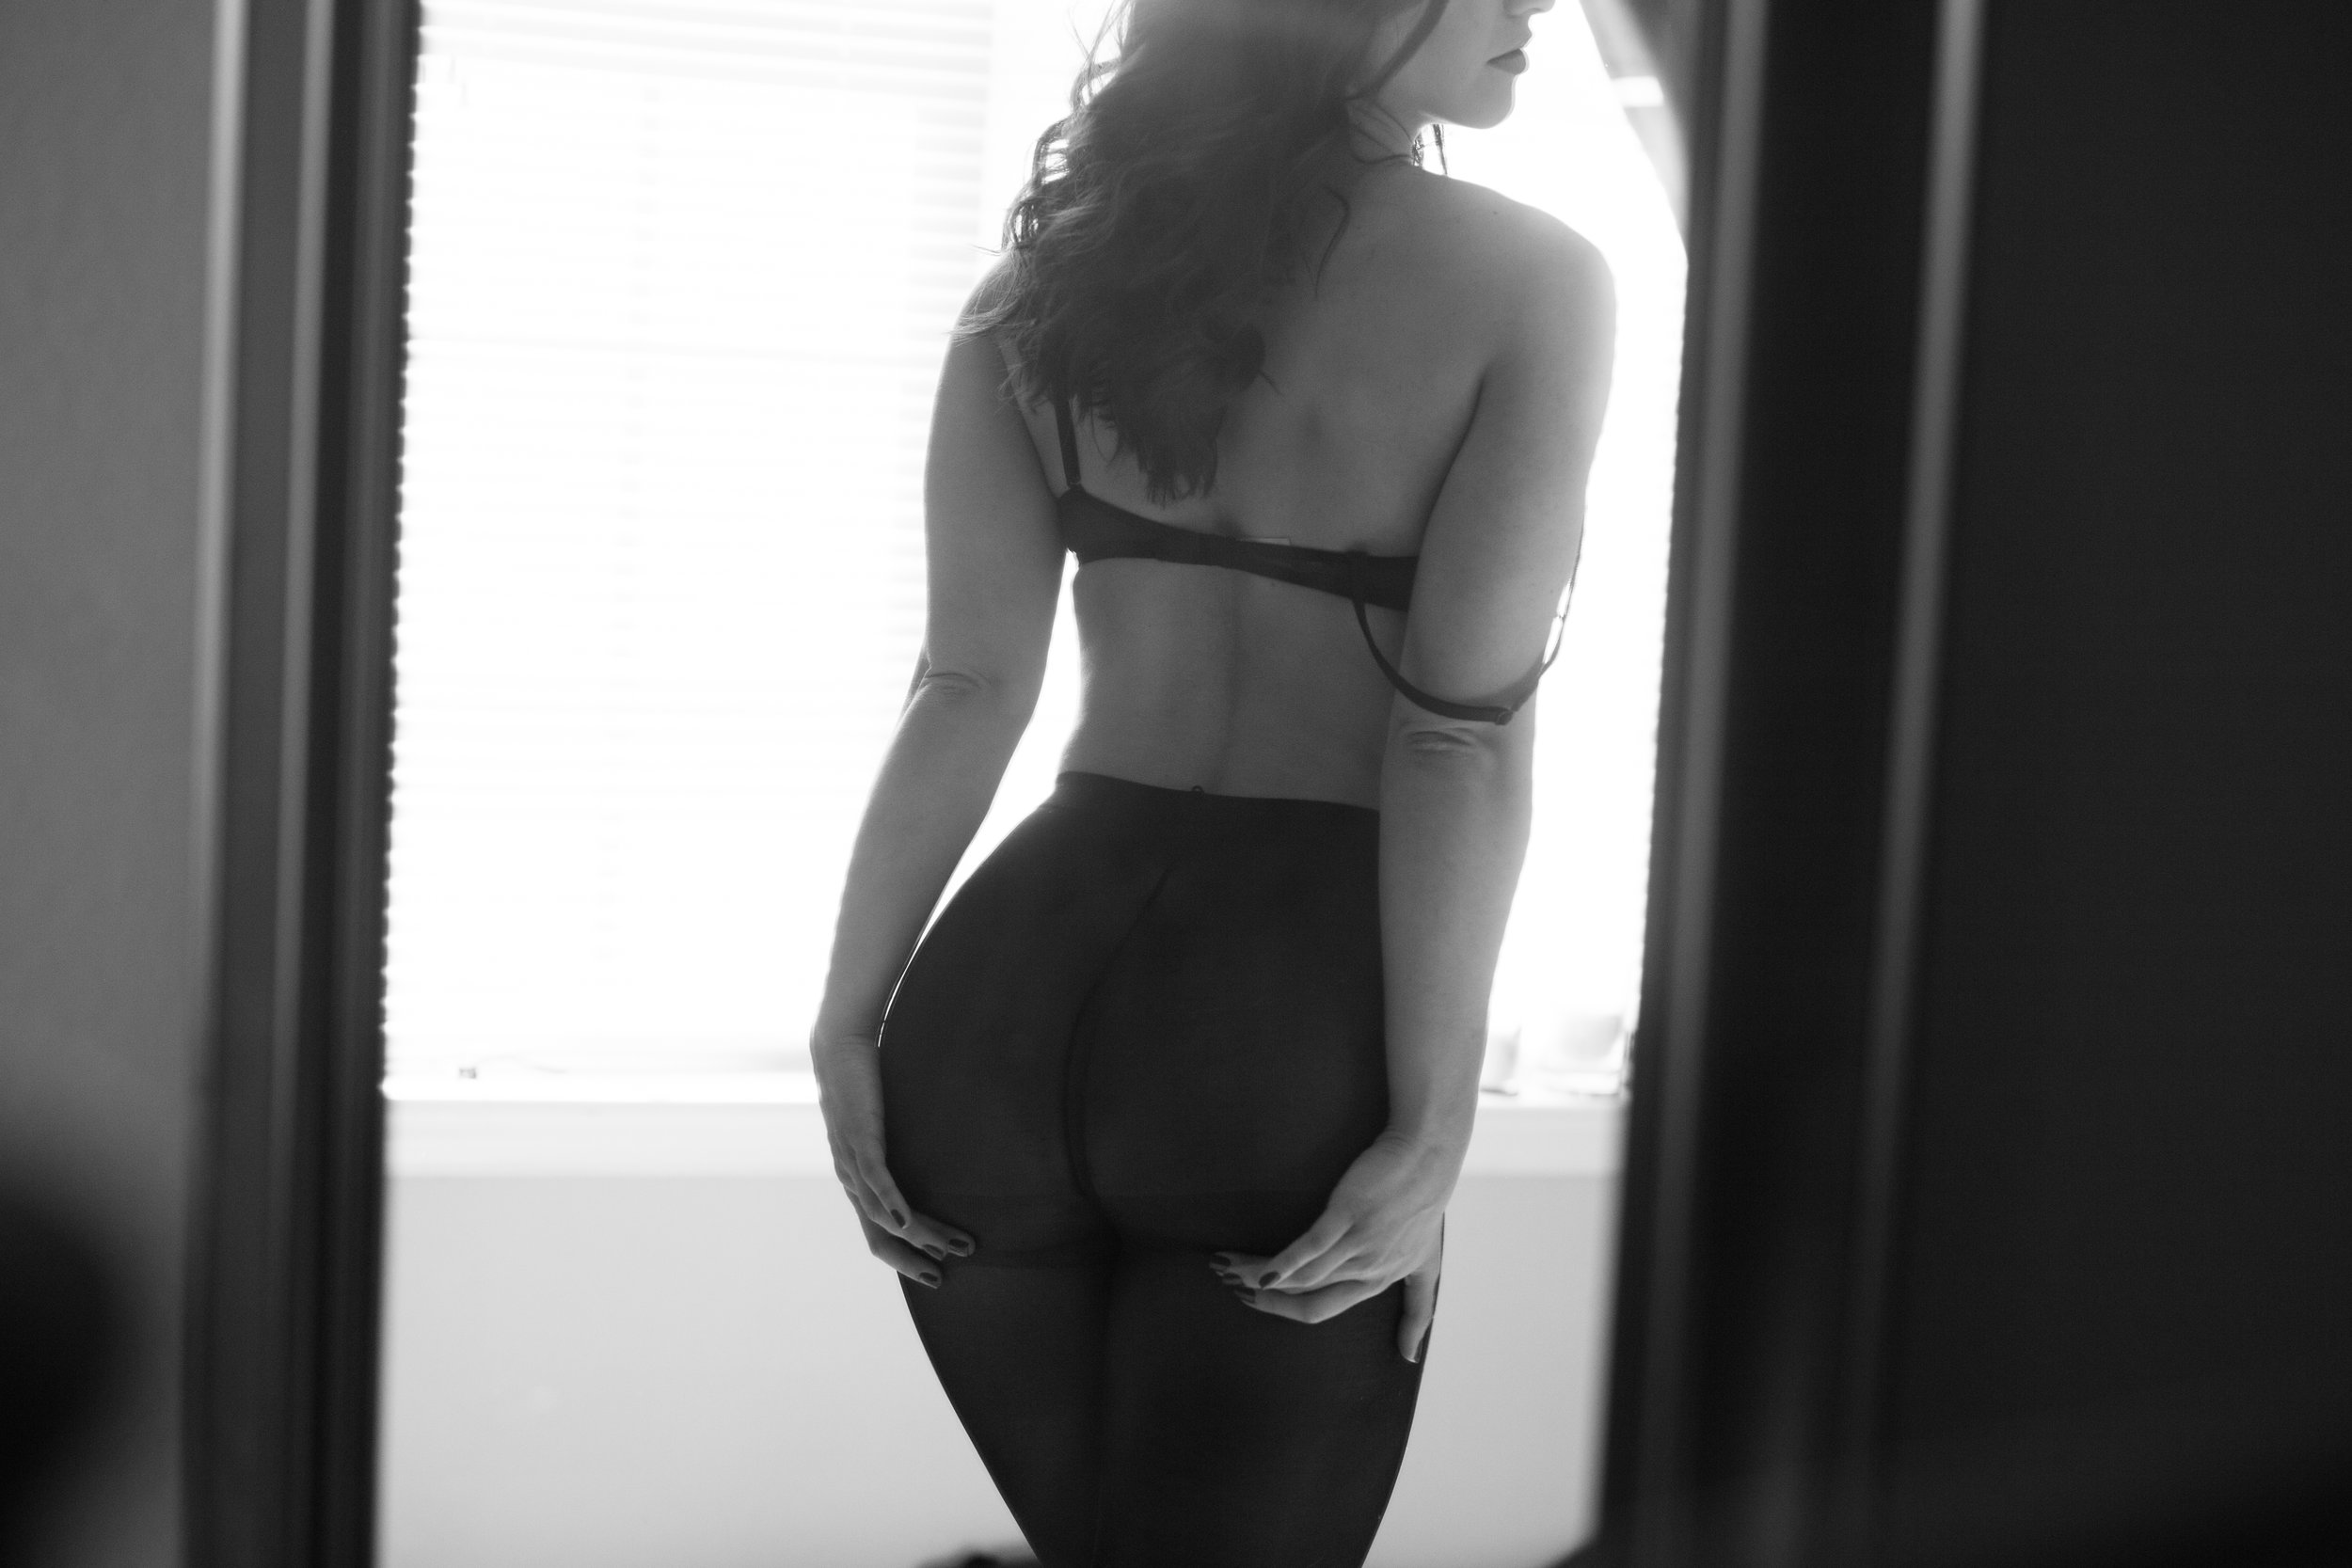 BOUDOIR - Want to view more? Click here